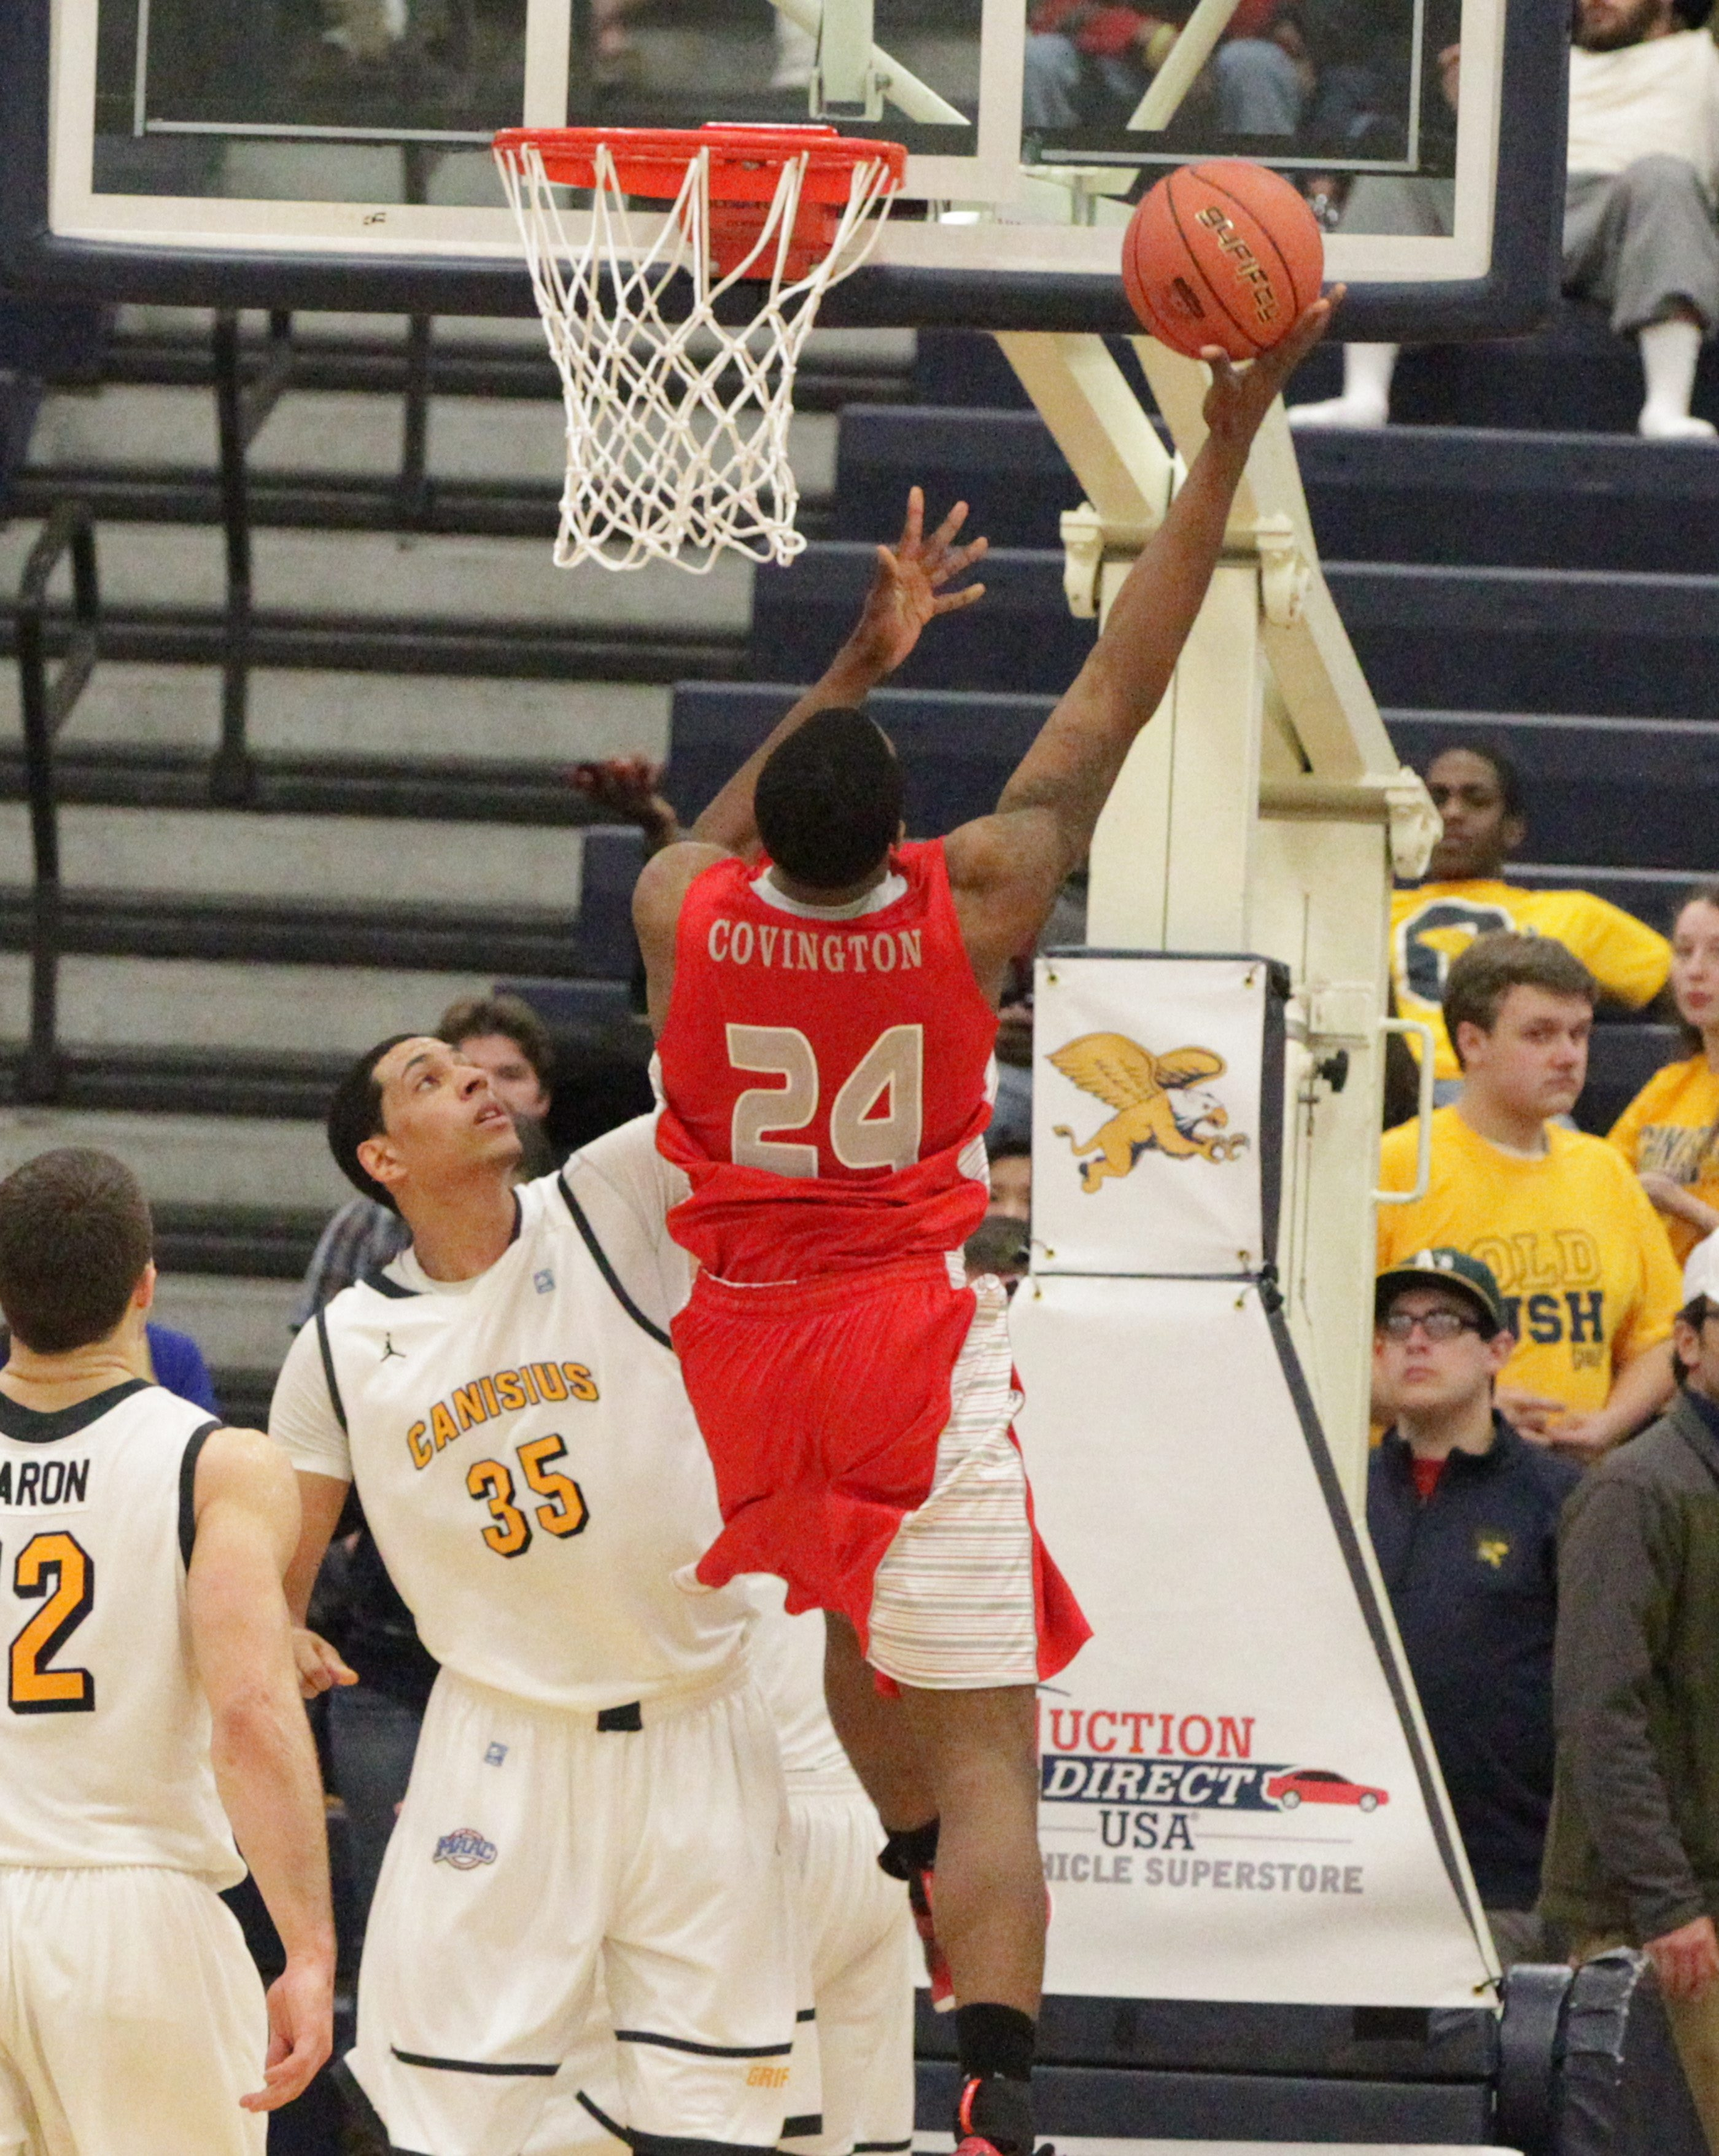 VMI's D.J. Covington goes up for two of his game-high 37 points against Canisius Tuesday during the CIT tournament game at the Koessler Athletic Center. VMI won 111-100.